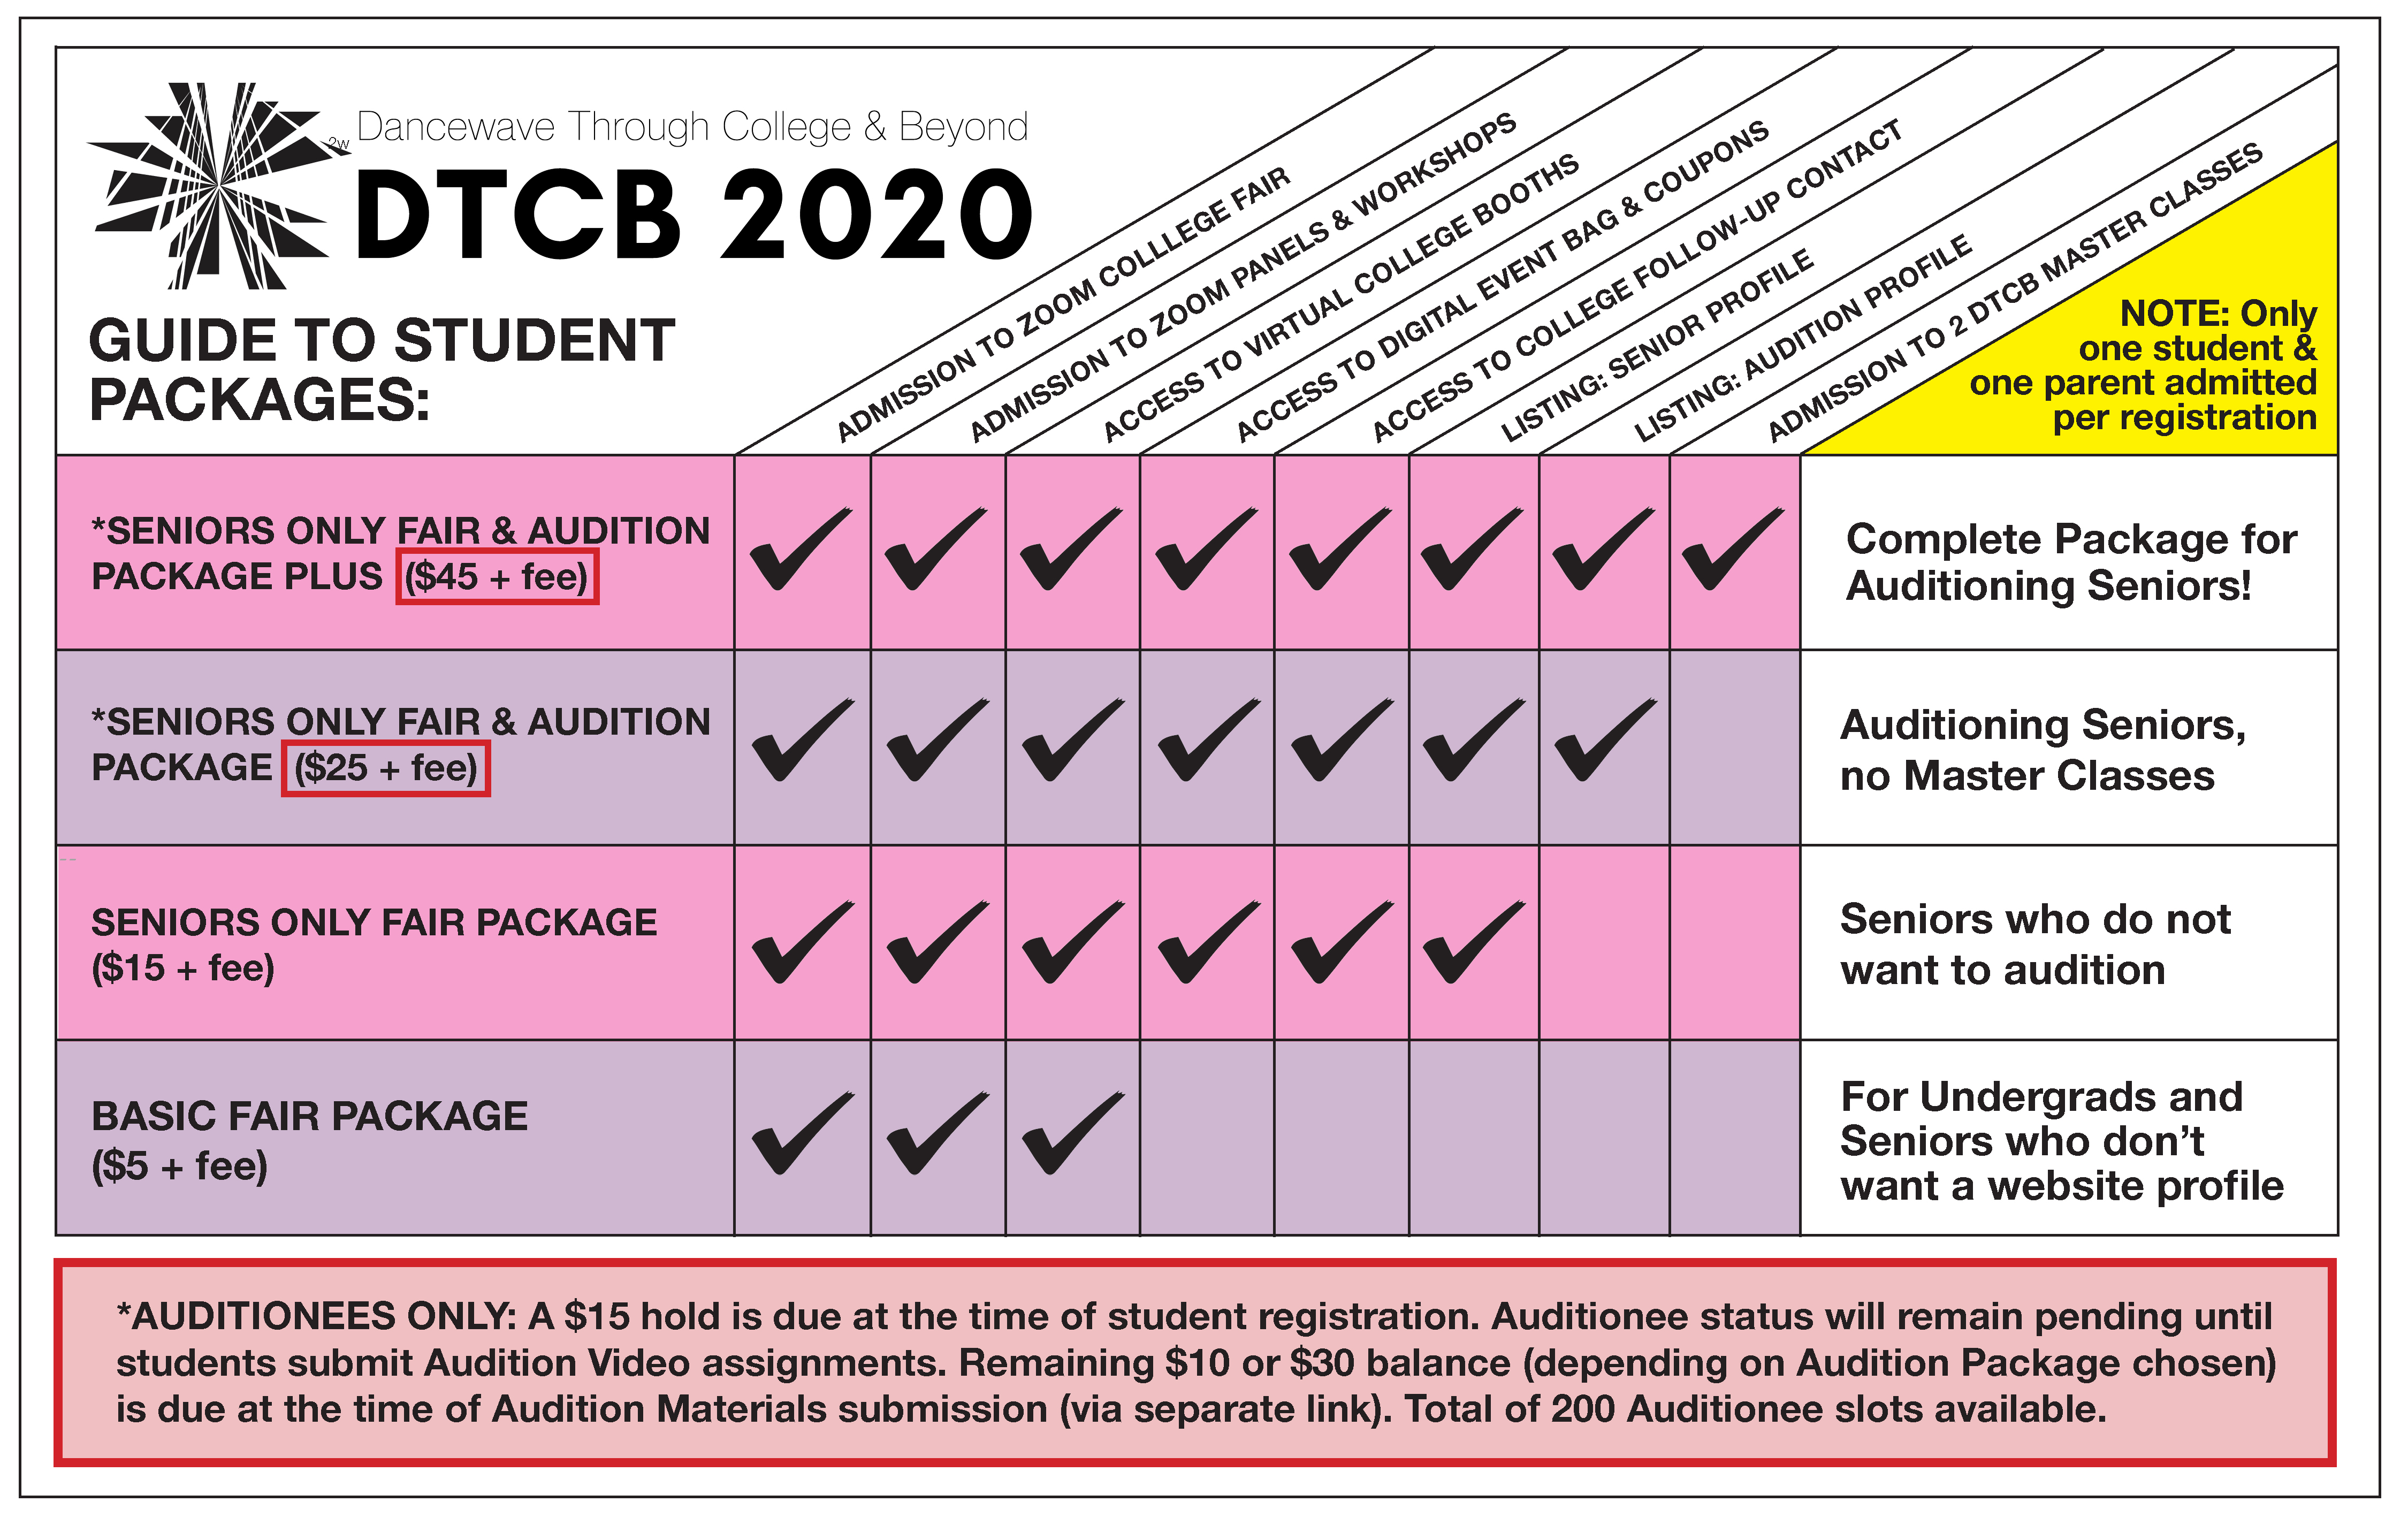 DTCB 2020 Student Packages